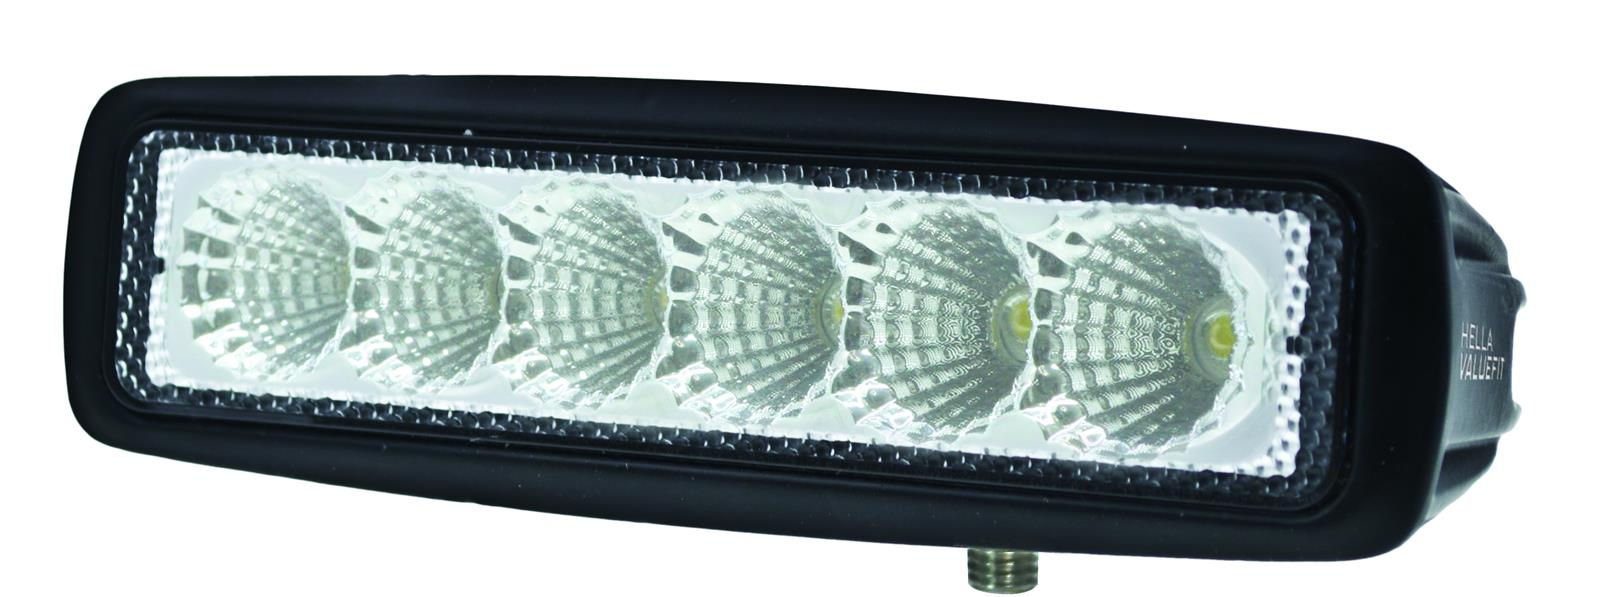 hight resolution of hella valuefit led light bars 357203001 free shipping on orders over 99 at summit racing